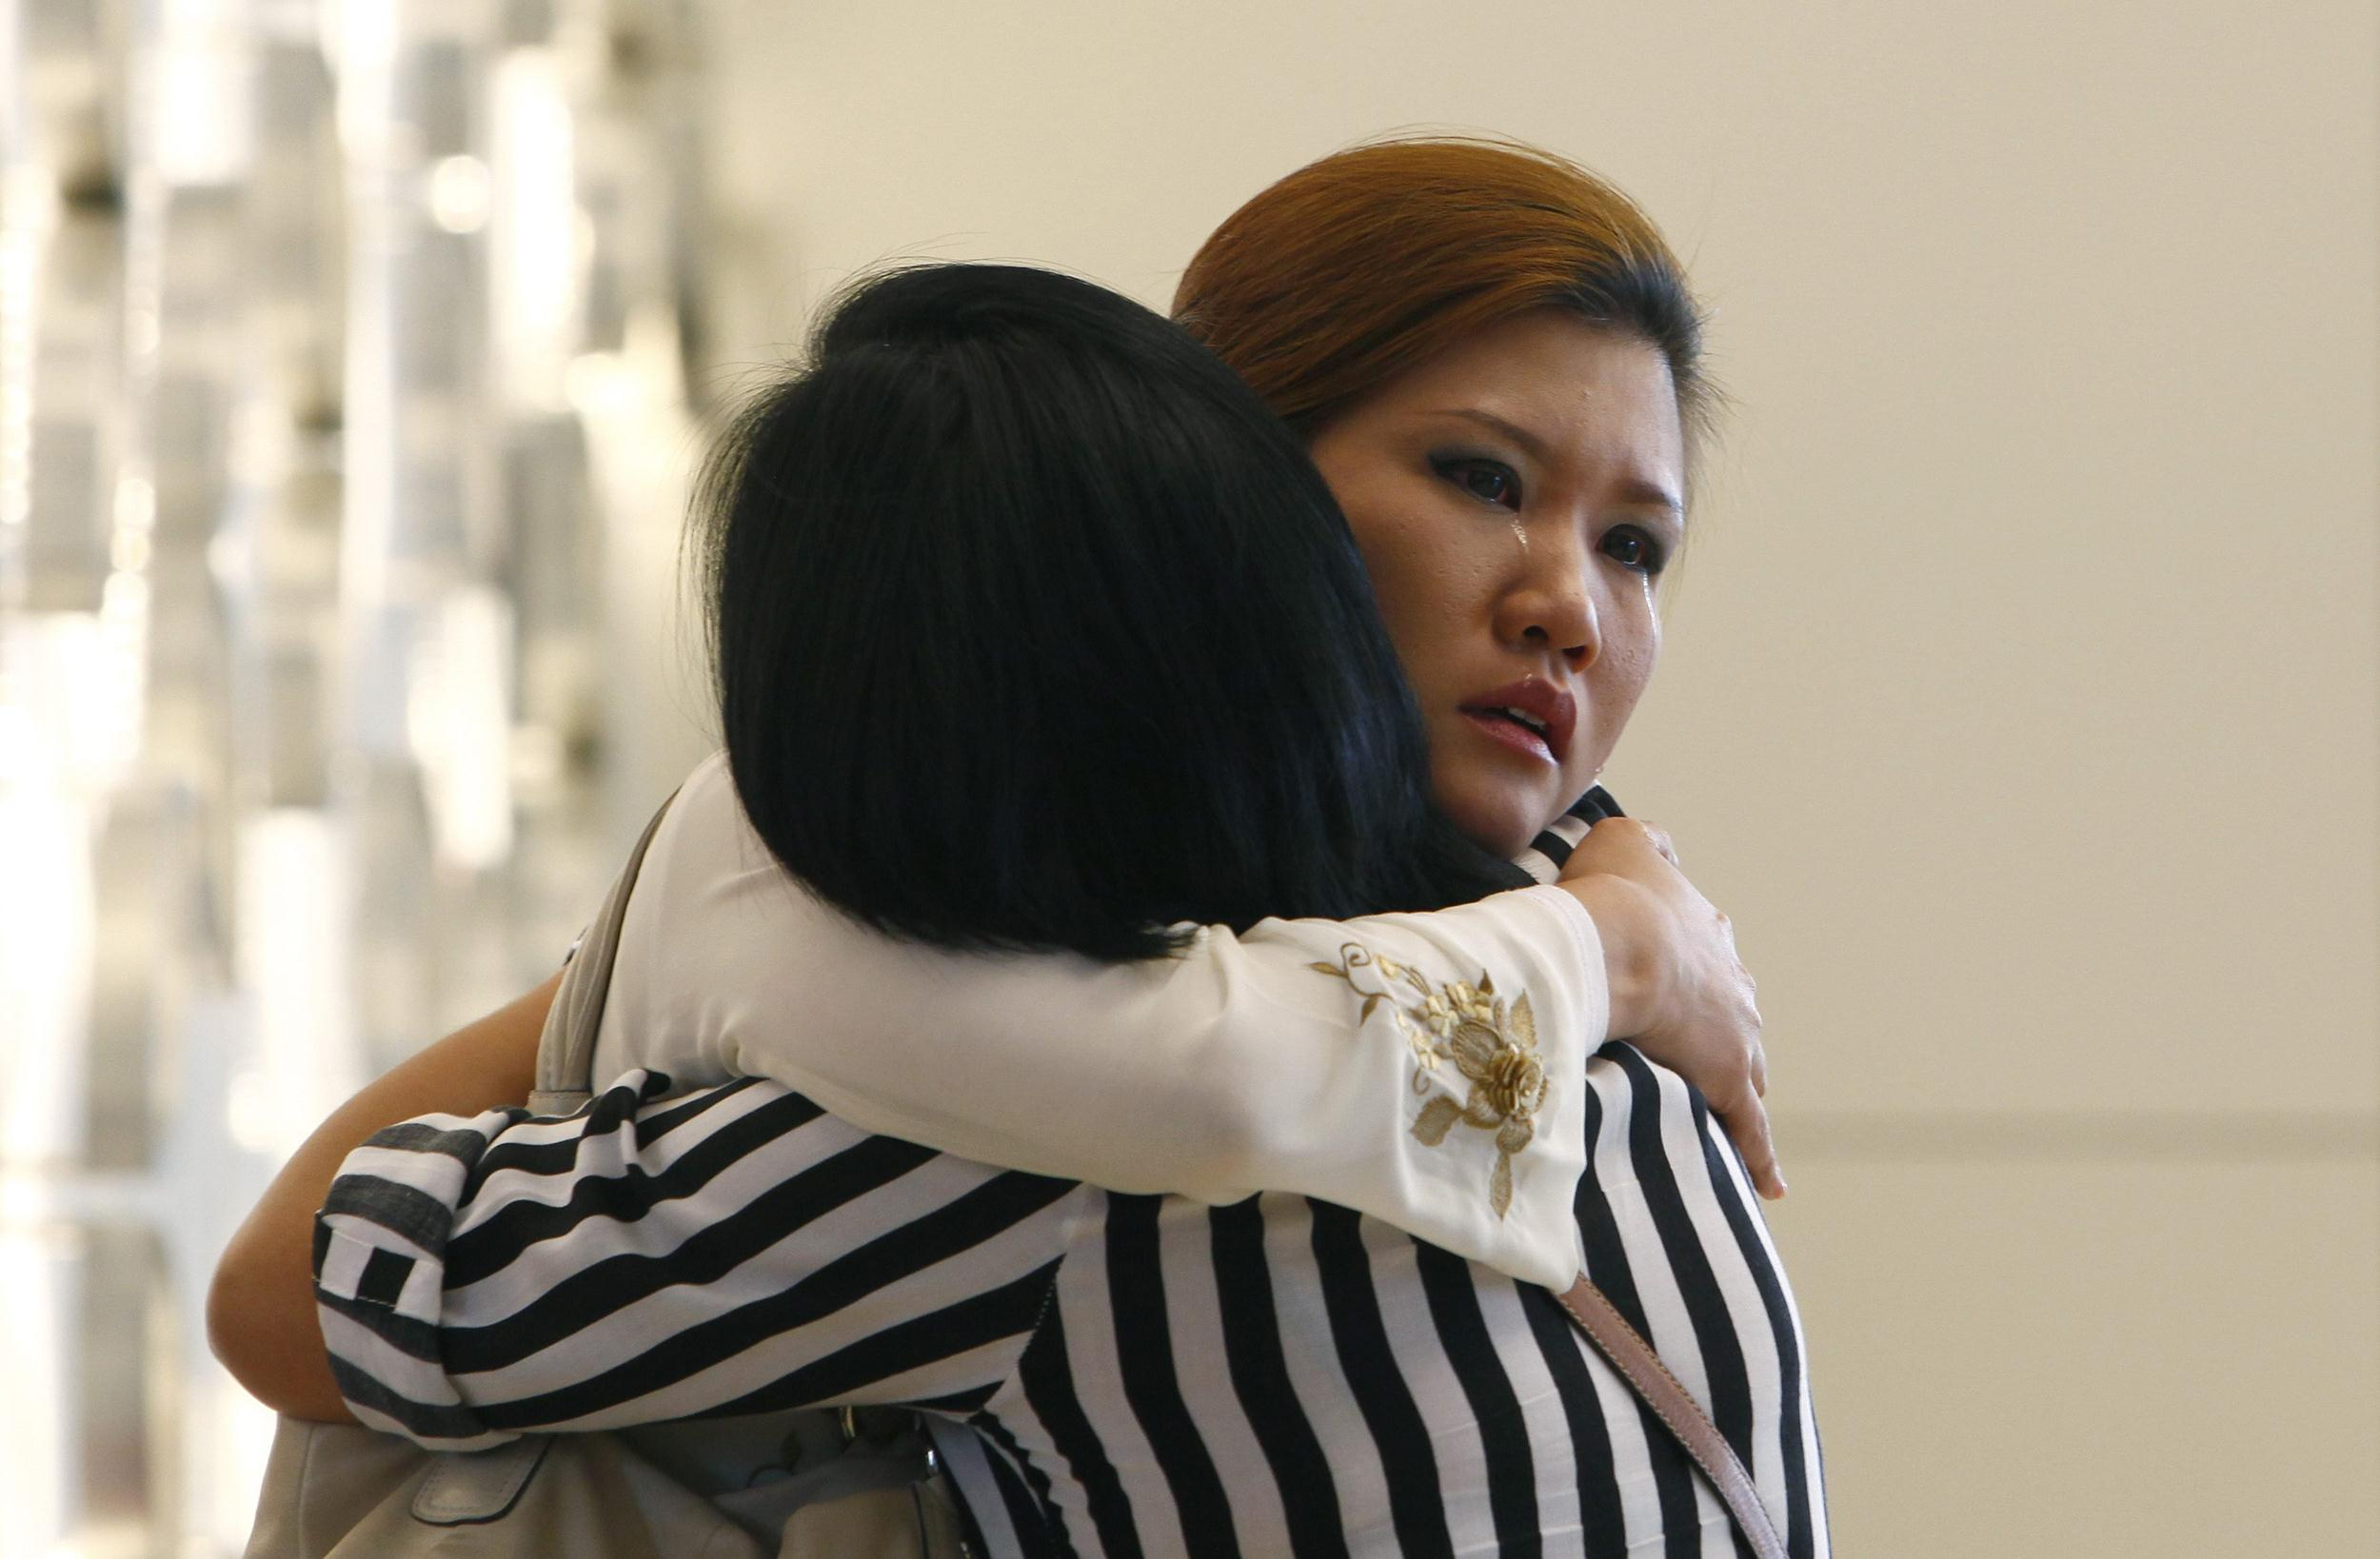 Image: Relatives of a passenger onboard the missing Malaysia Airlines flight MH370 cry inside a hotel they are staying, in Putrajaya